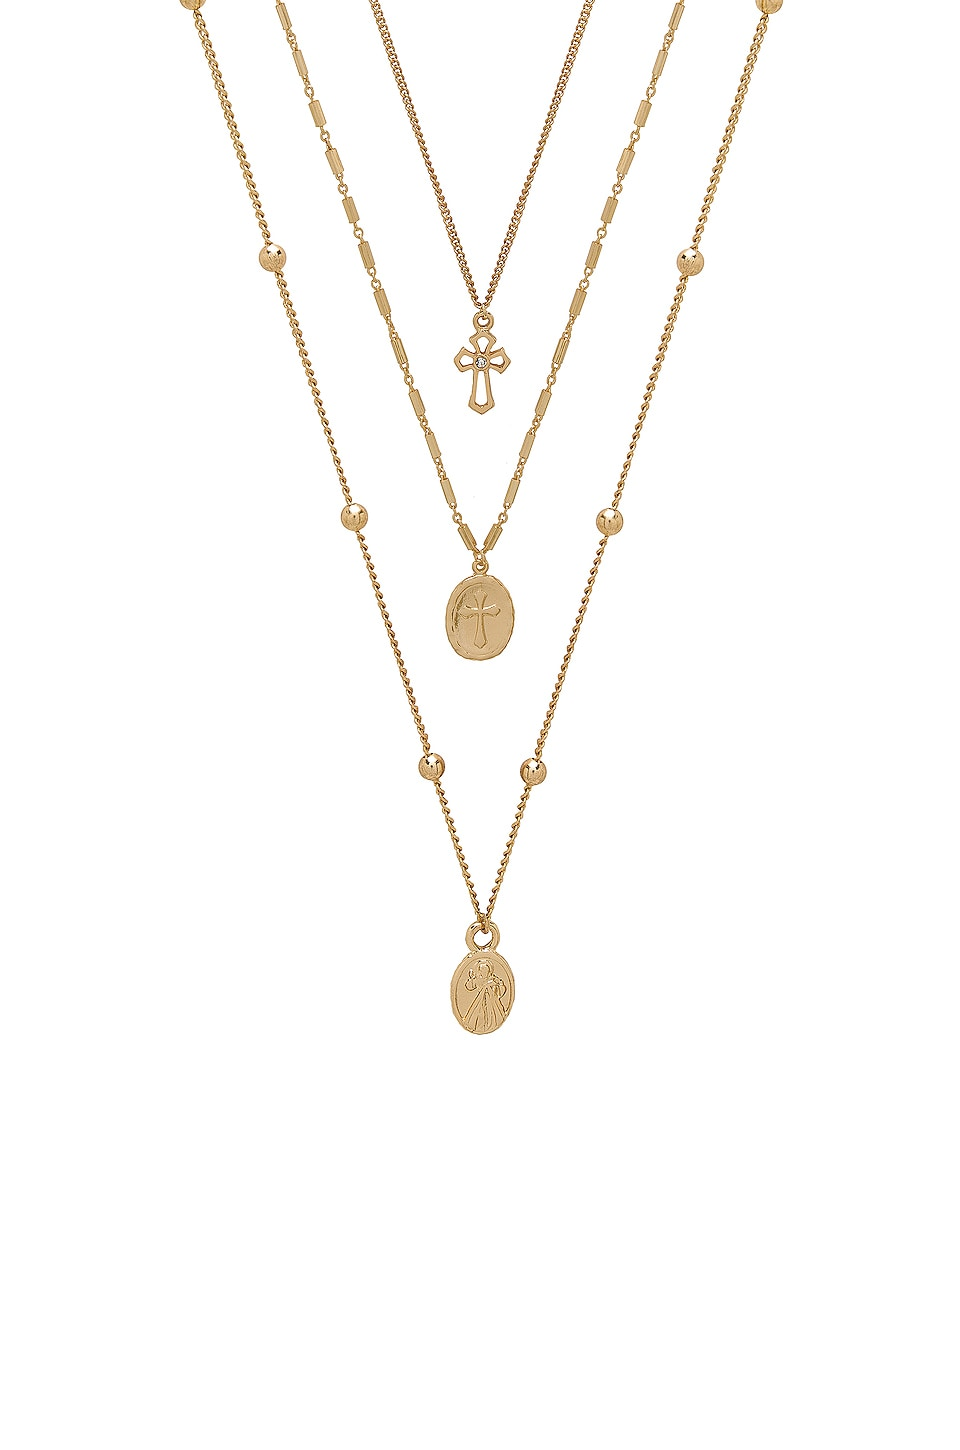 Ettika Single Charmer Necklace Set in Gold